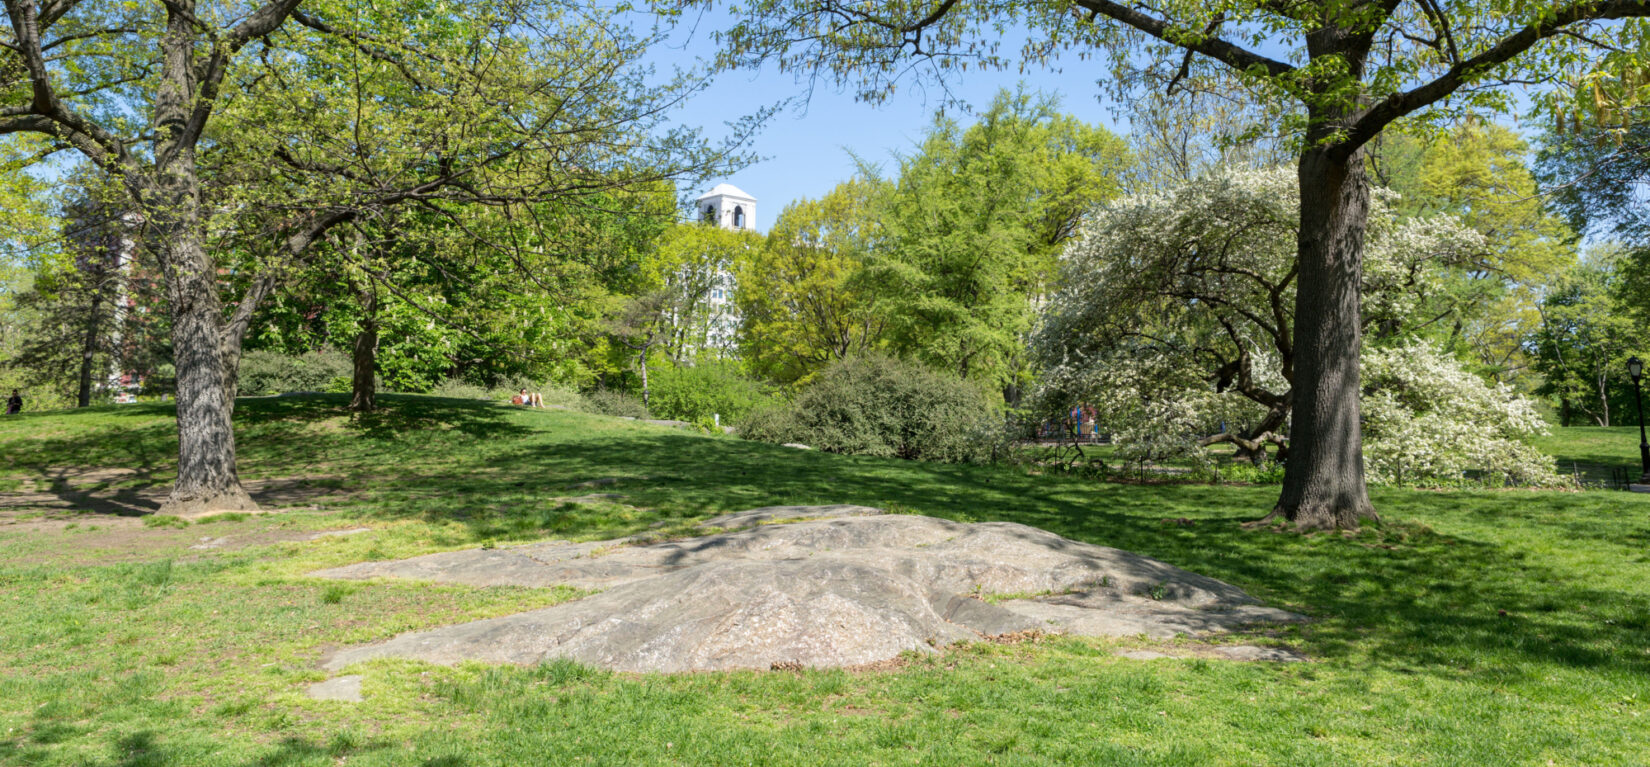 A rock outcropping at the Seneca Village site surrounded by trees in springtime